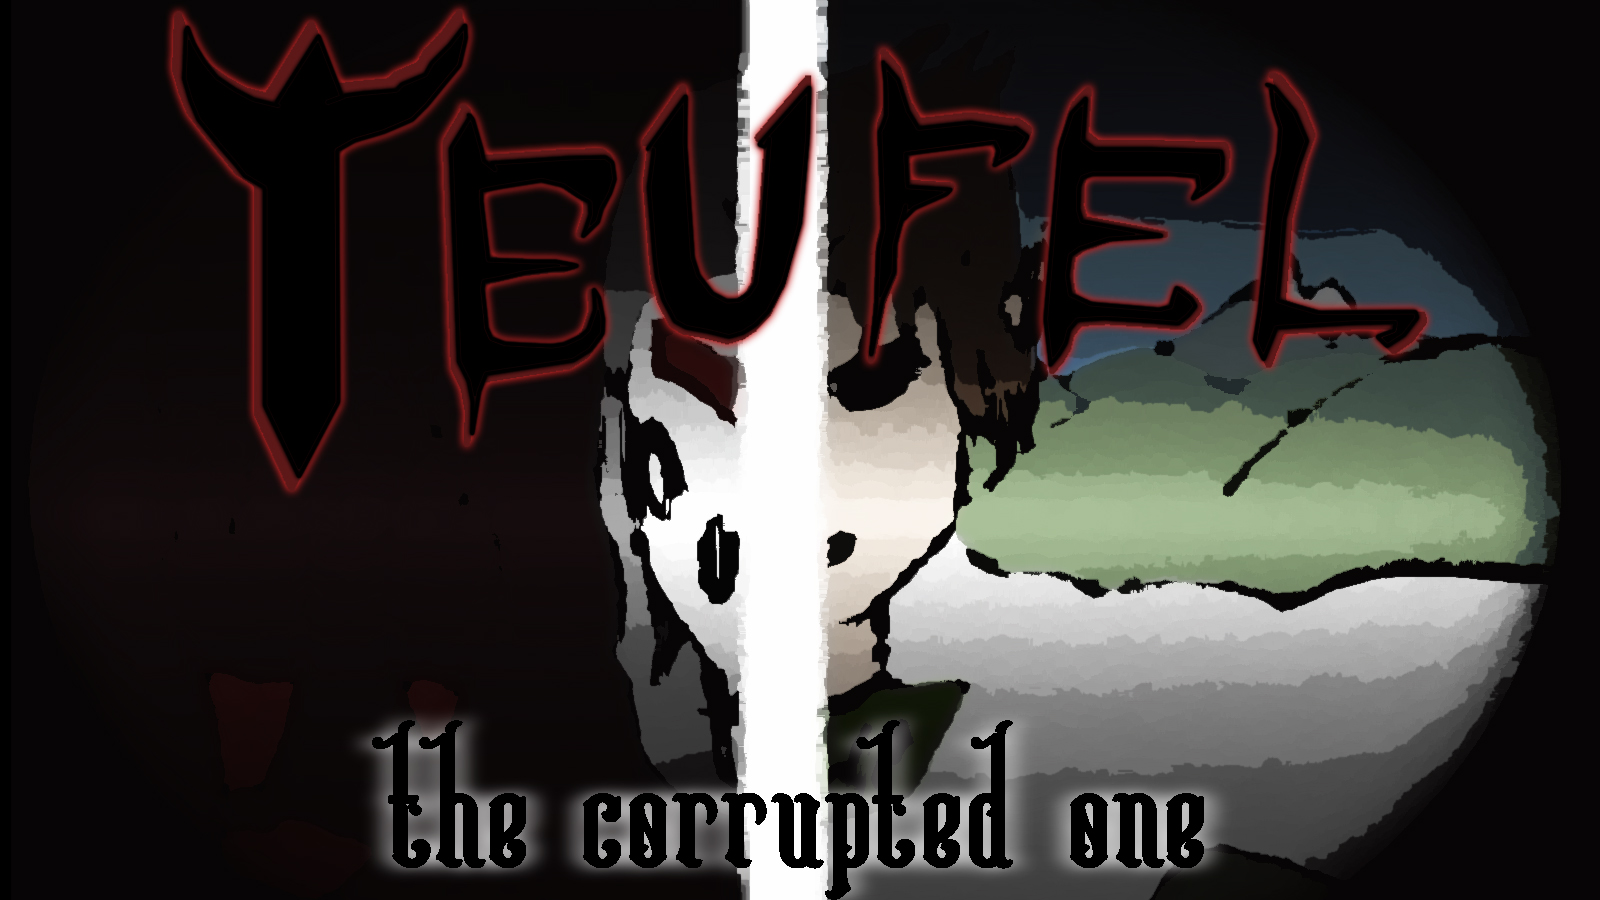 Teufel: The Corrupted One